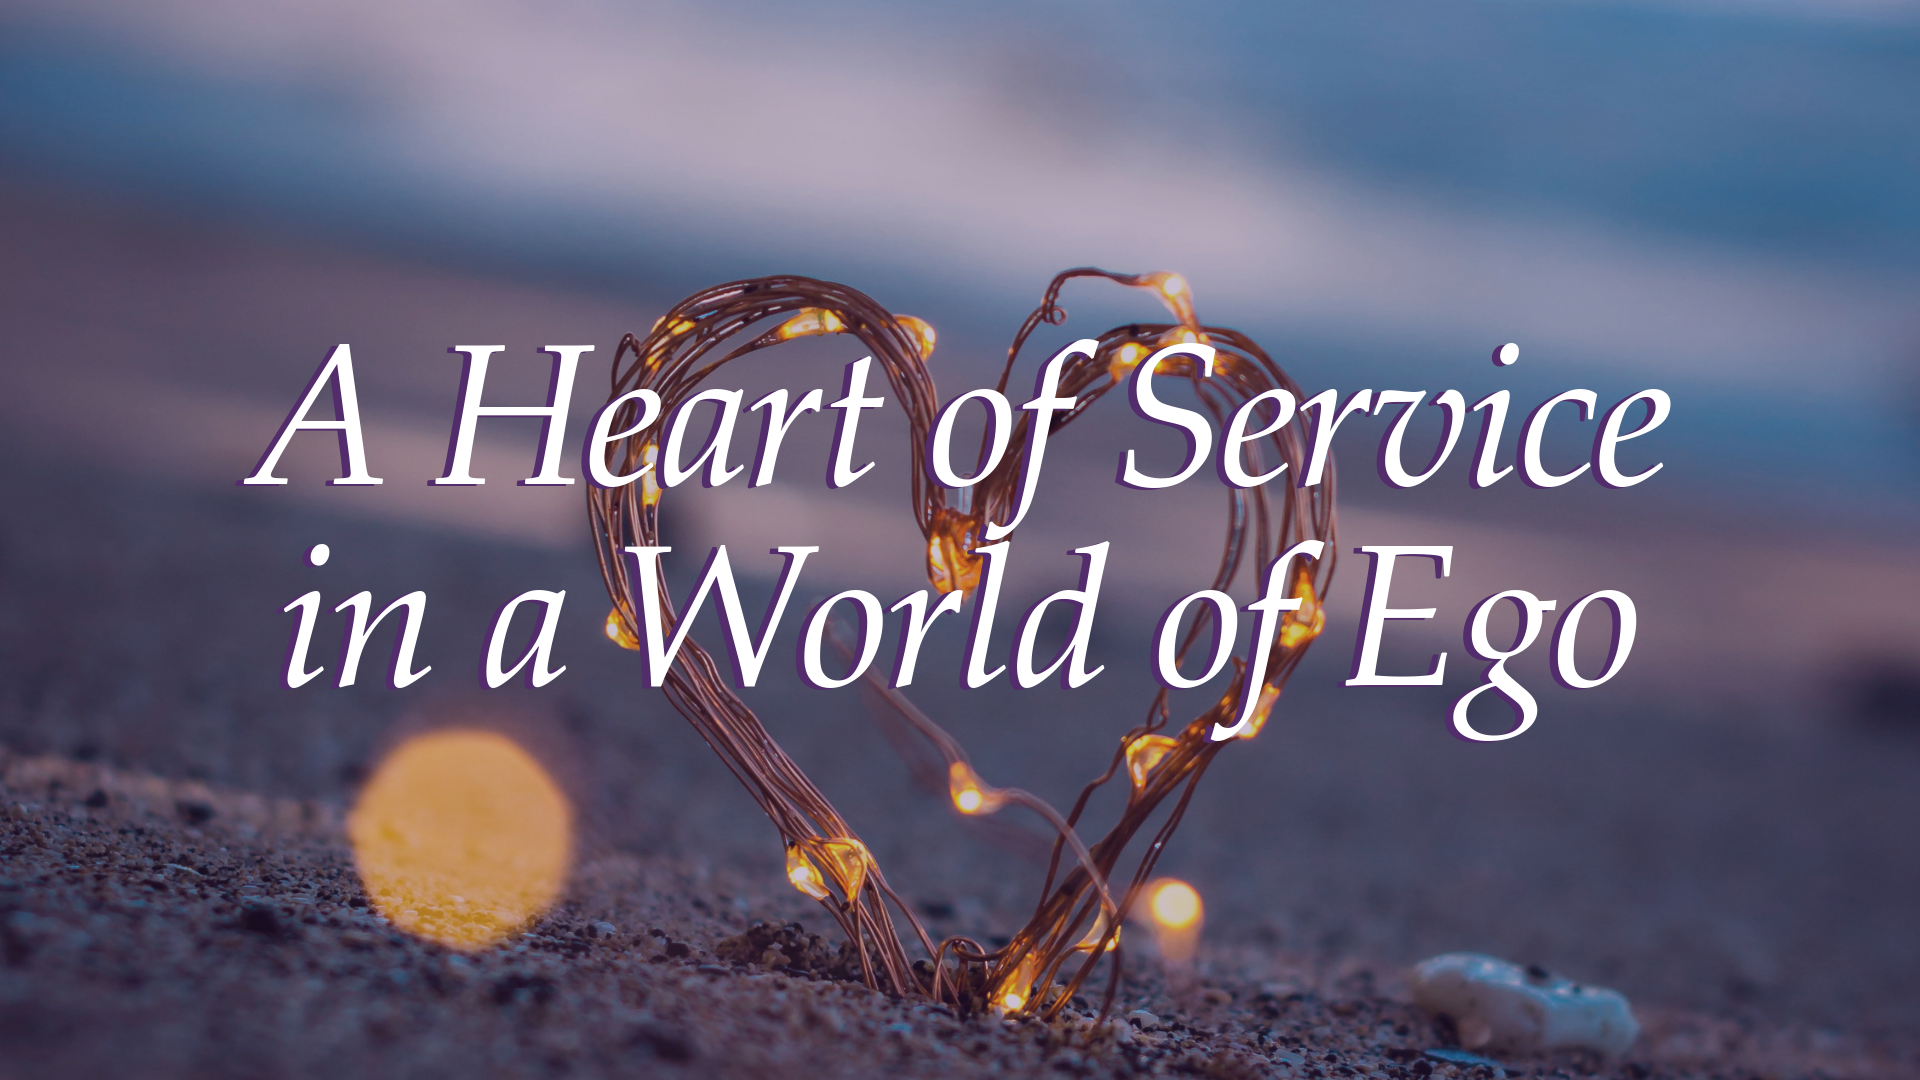 A Heart of Service in a World of Ego